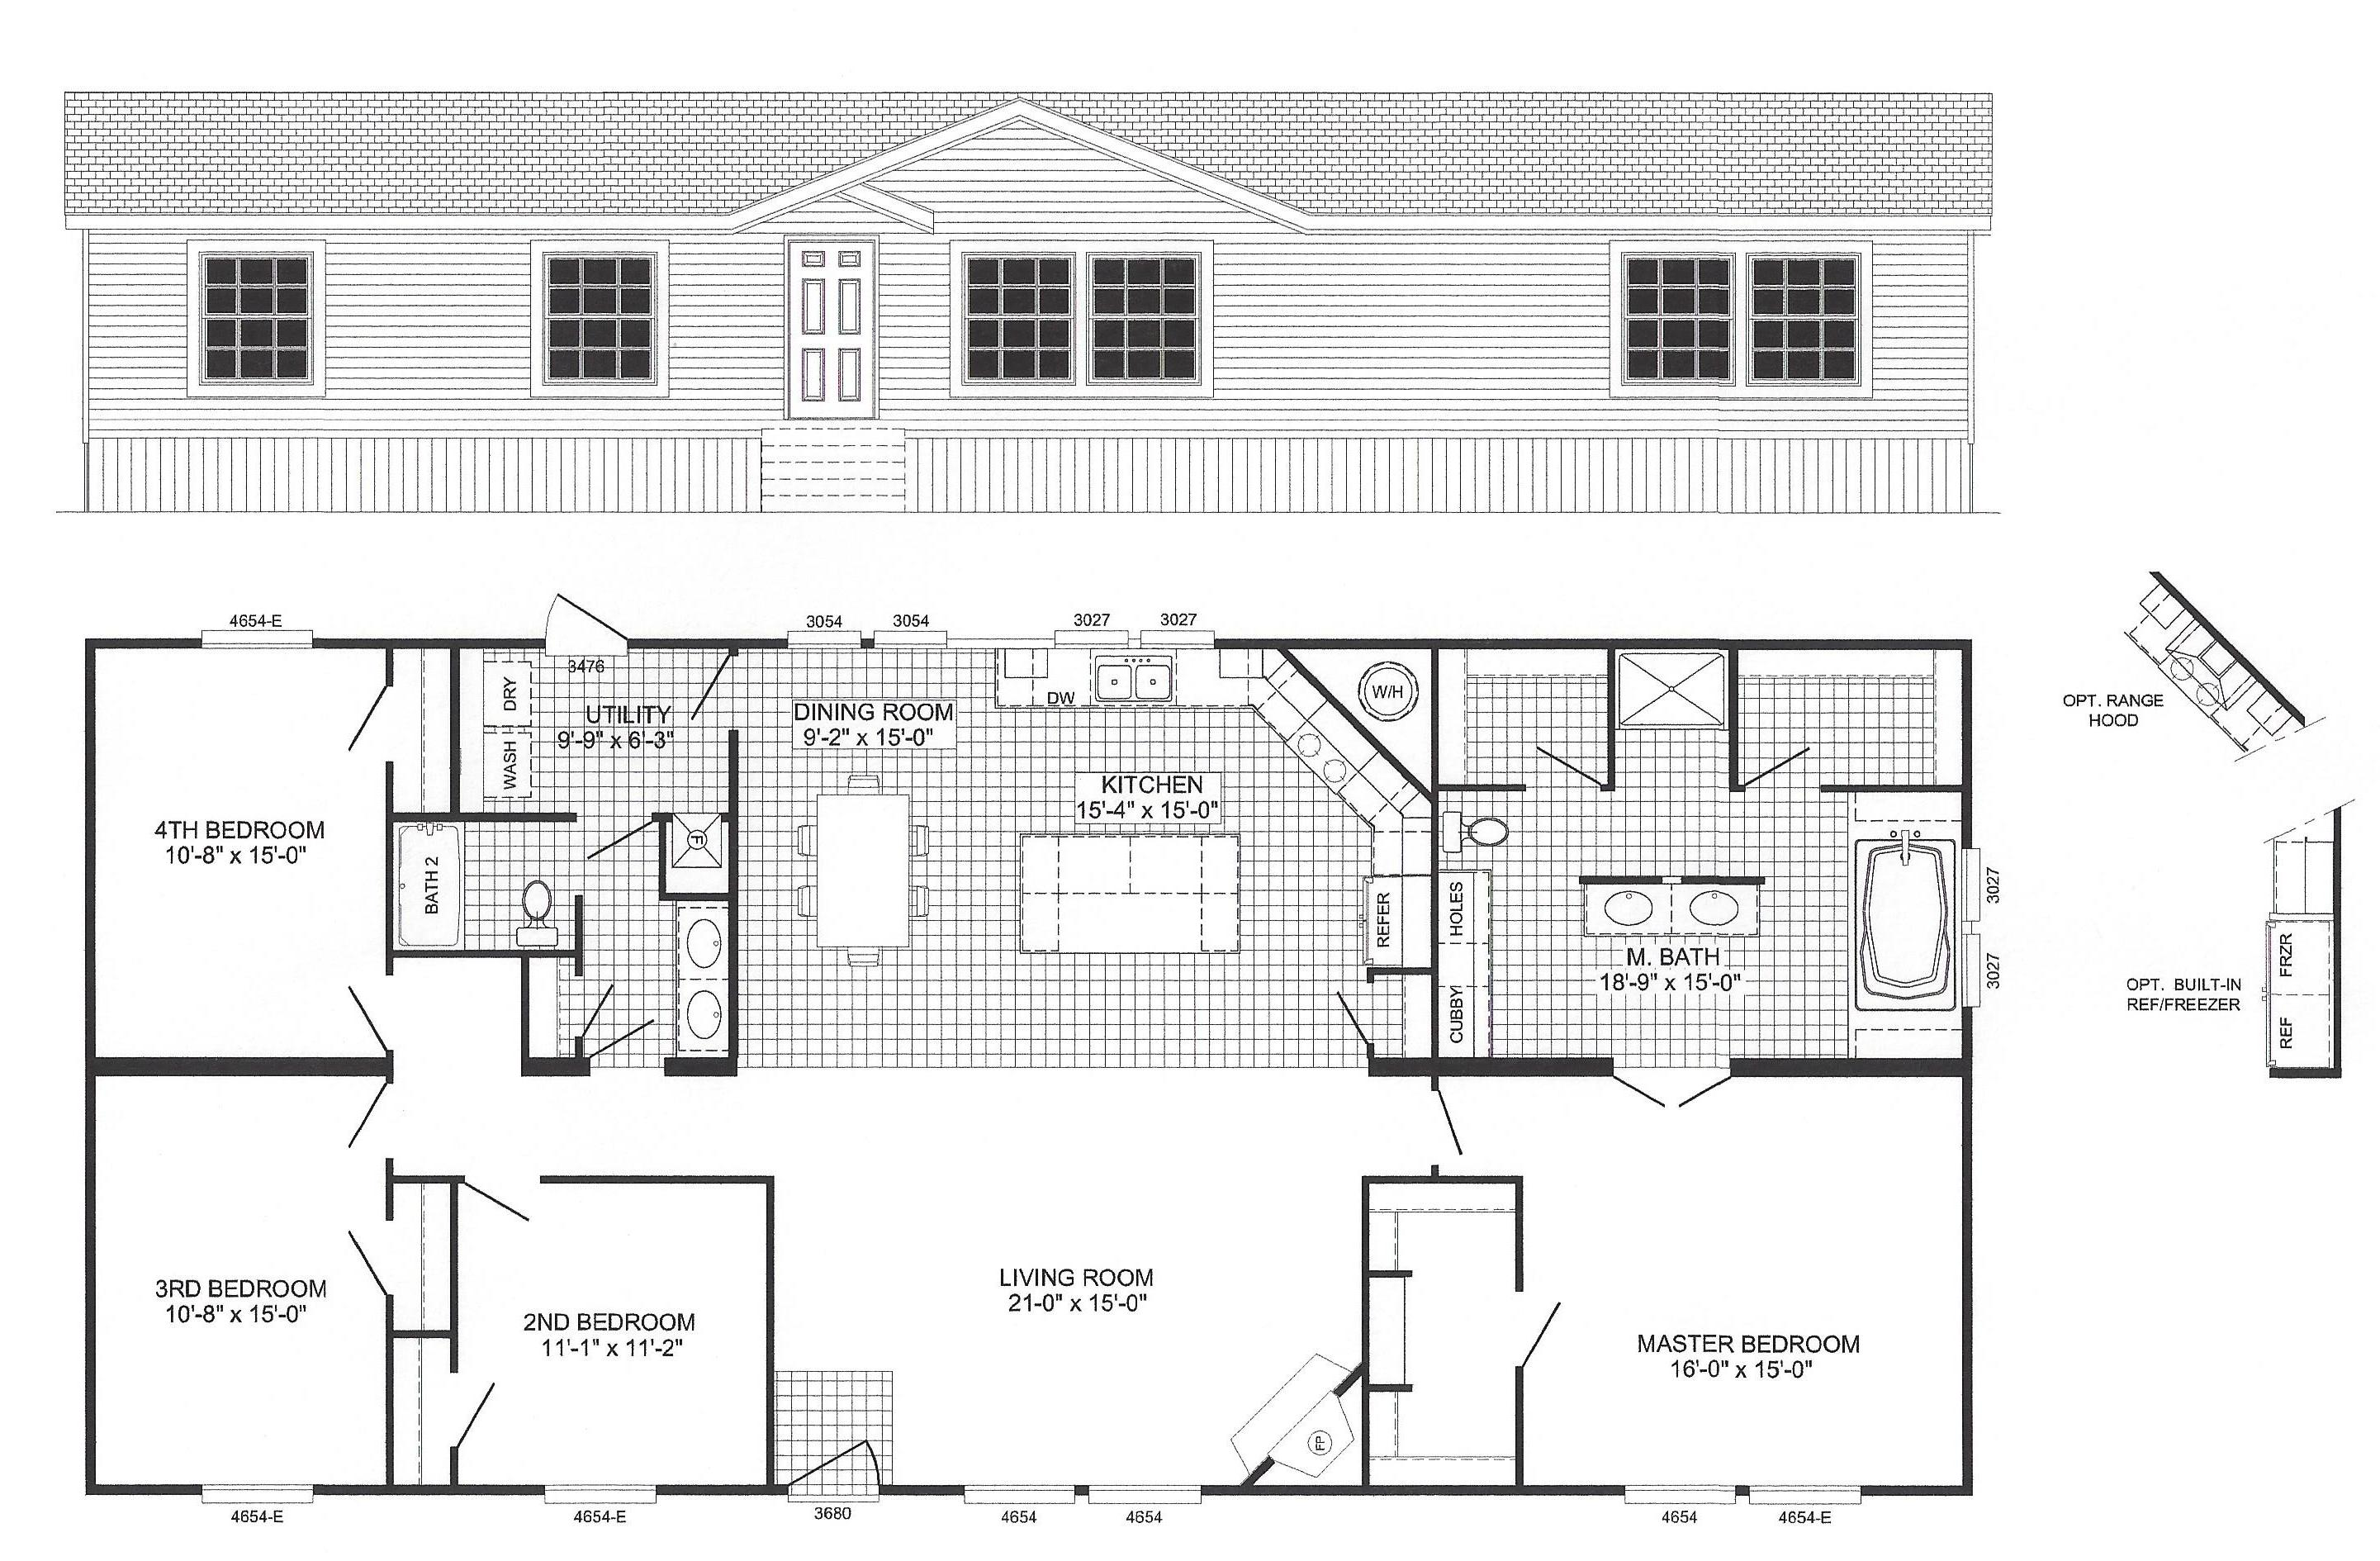 New 32 70 4 bedroom 2 bath with finished sheetrock through out  upgraded  stainless steel appliances with 6  refer and freezer  upgraded glass  ventahood 8. 4 Bedroom Floor Plan  B 6012   Hawks Homes   Manufactured